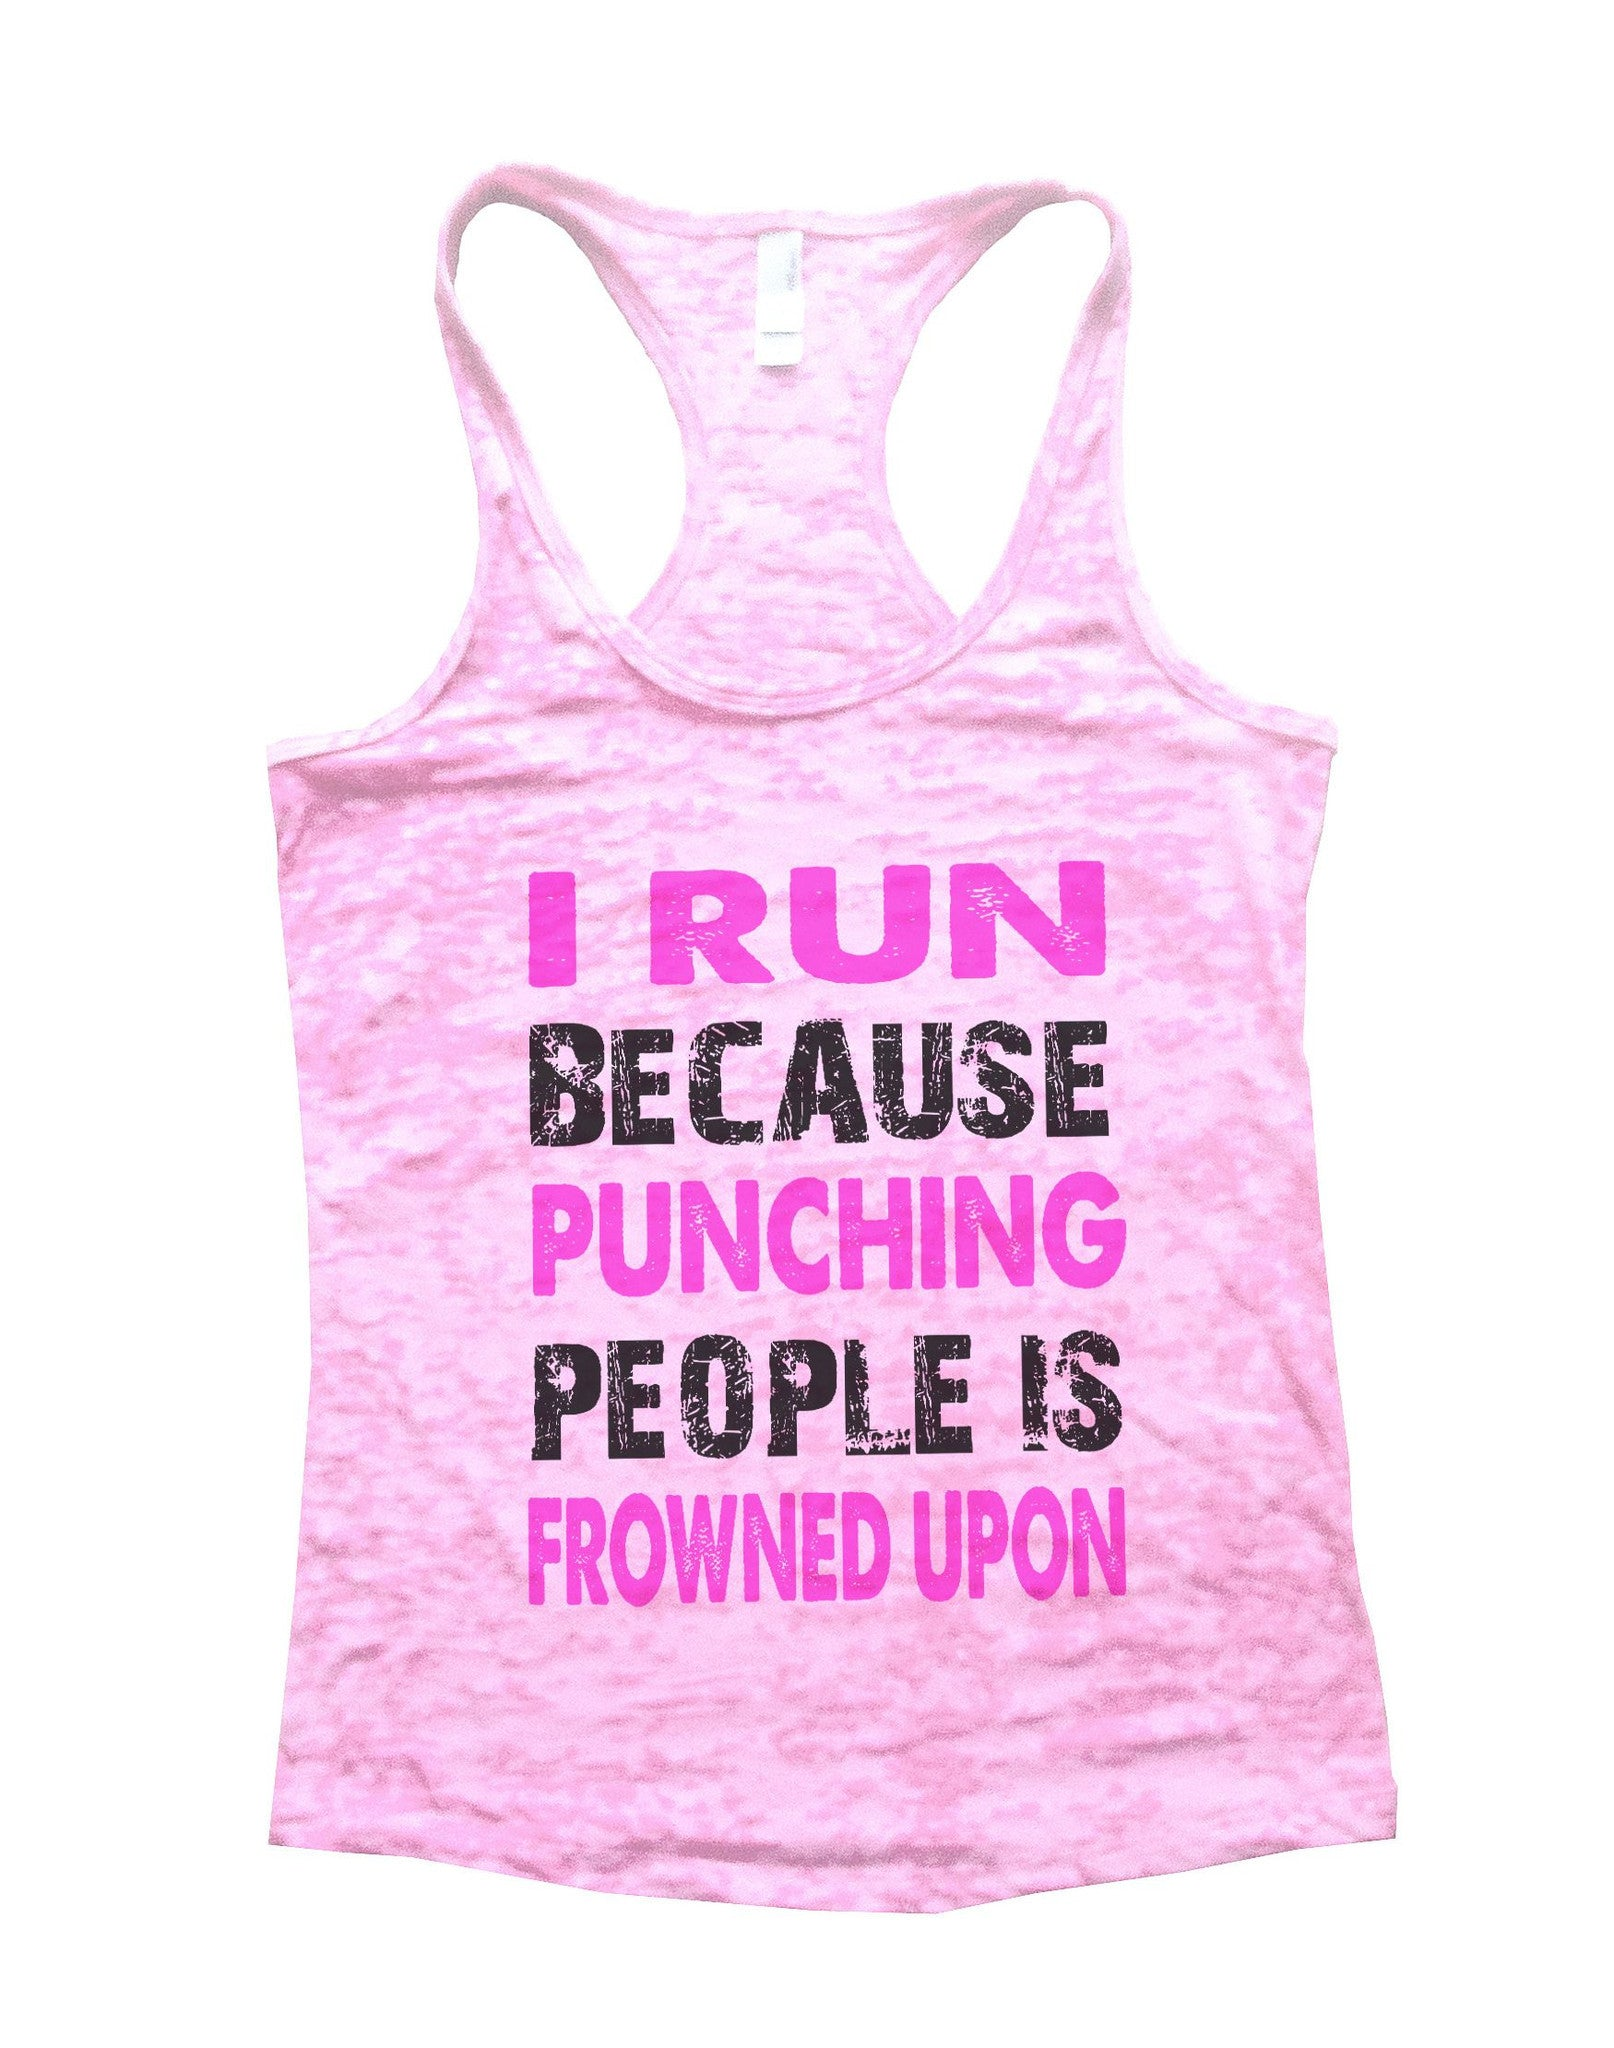 I Run Because Punching People Is Frowned Upon Burnout Tank Top By BurnoutTankTops.com - 708 - Funny Shirts Tank Tops Burnouts and Triblends  - 2